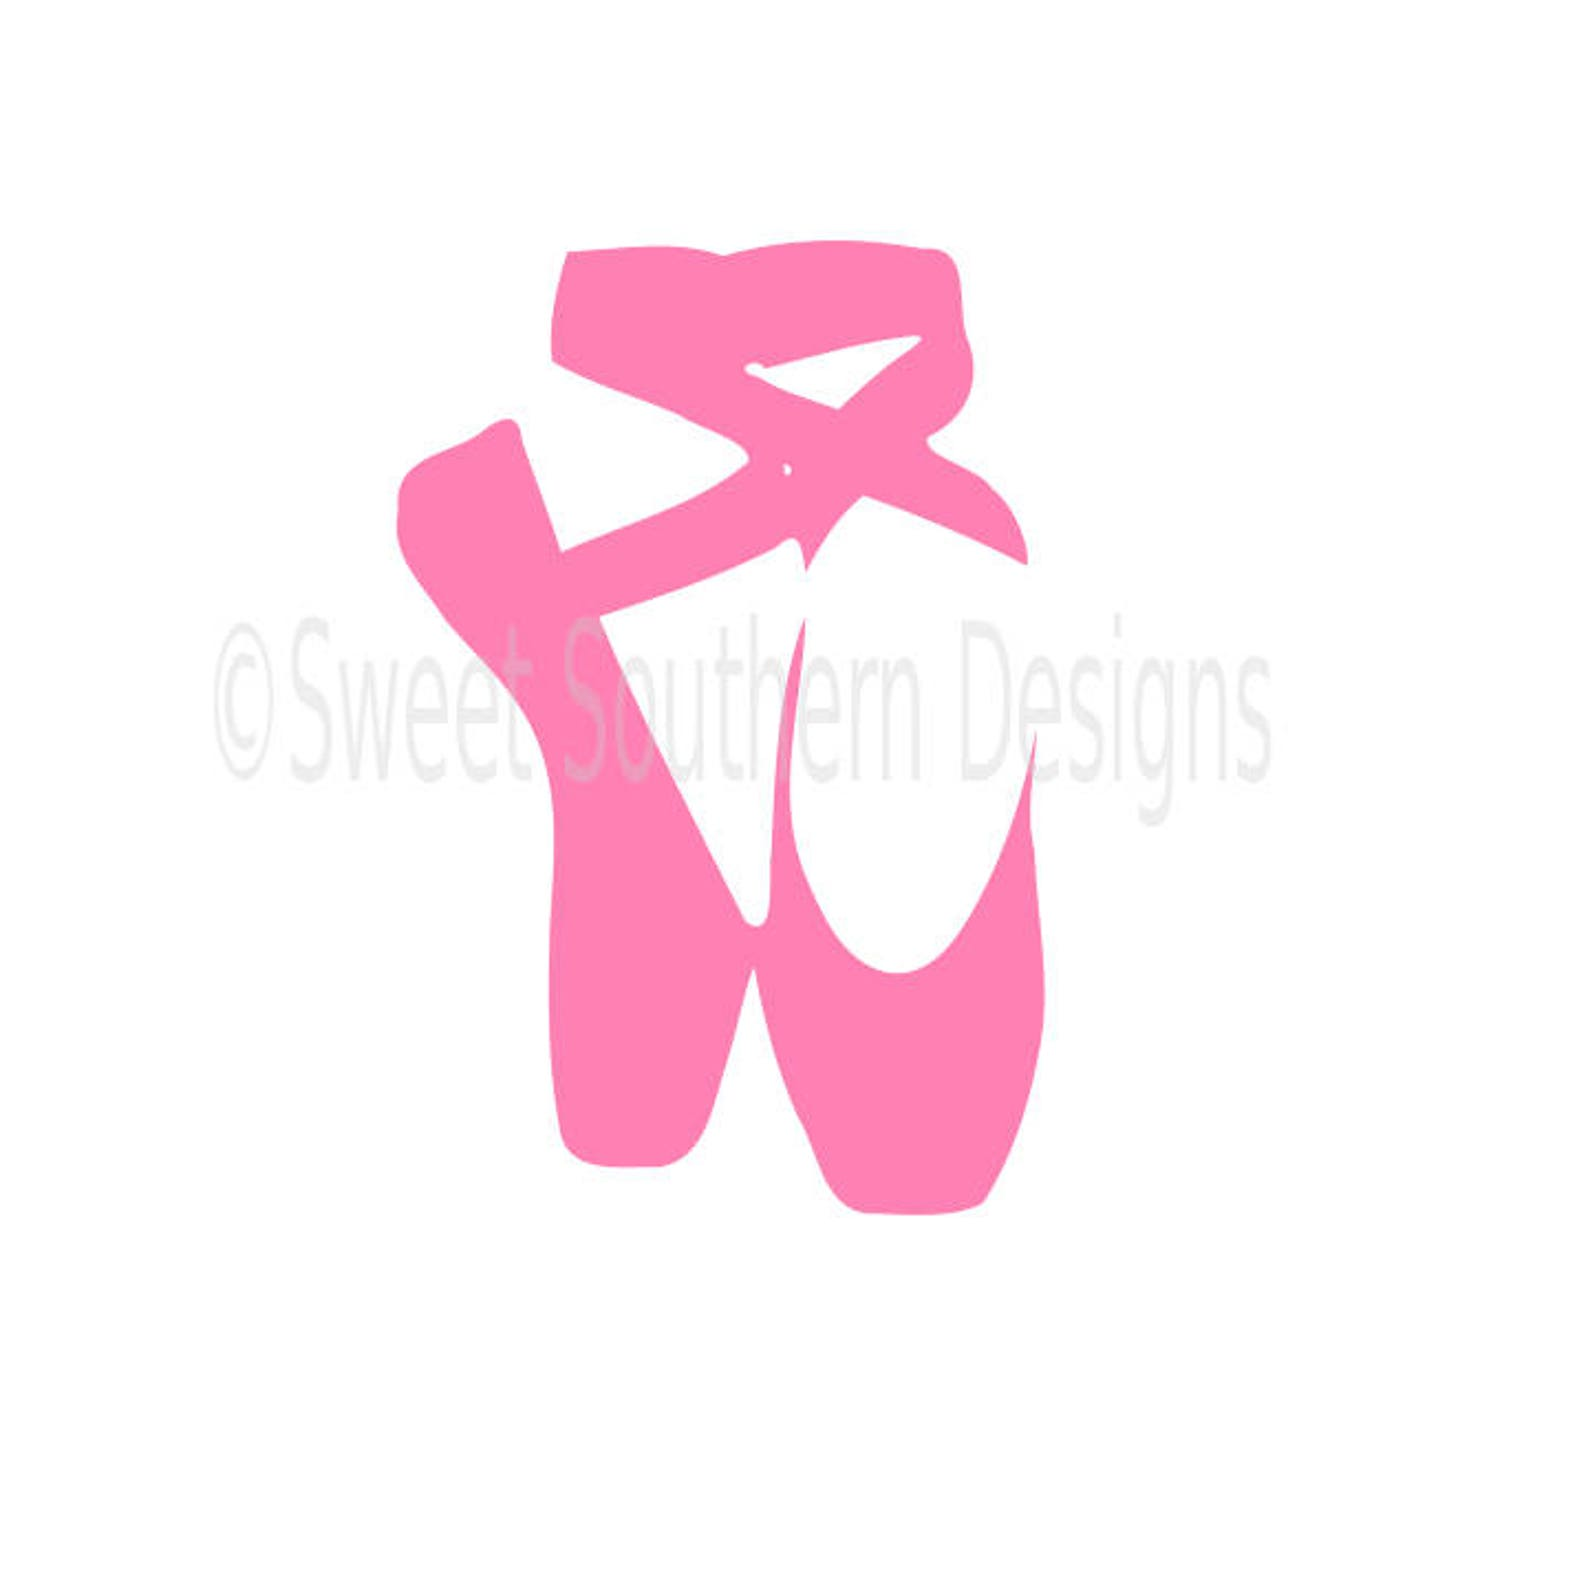 ballet shoes svg instant download design for cricut or silhouette